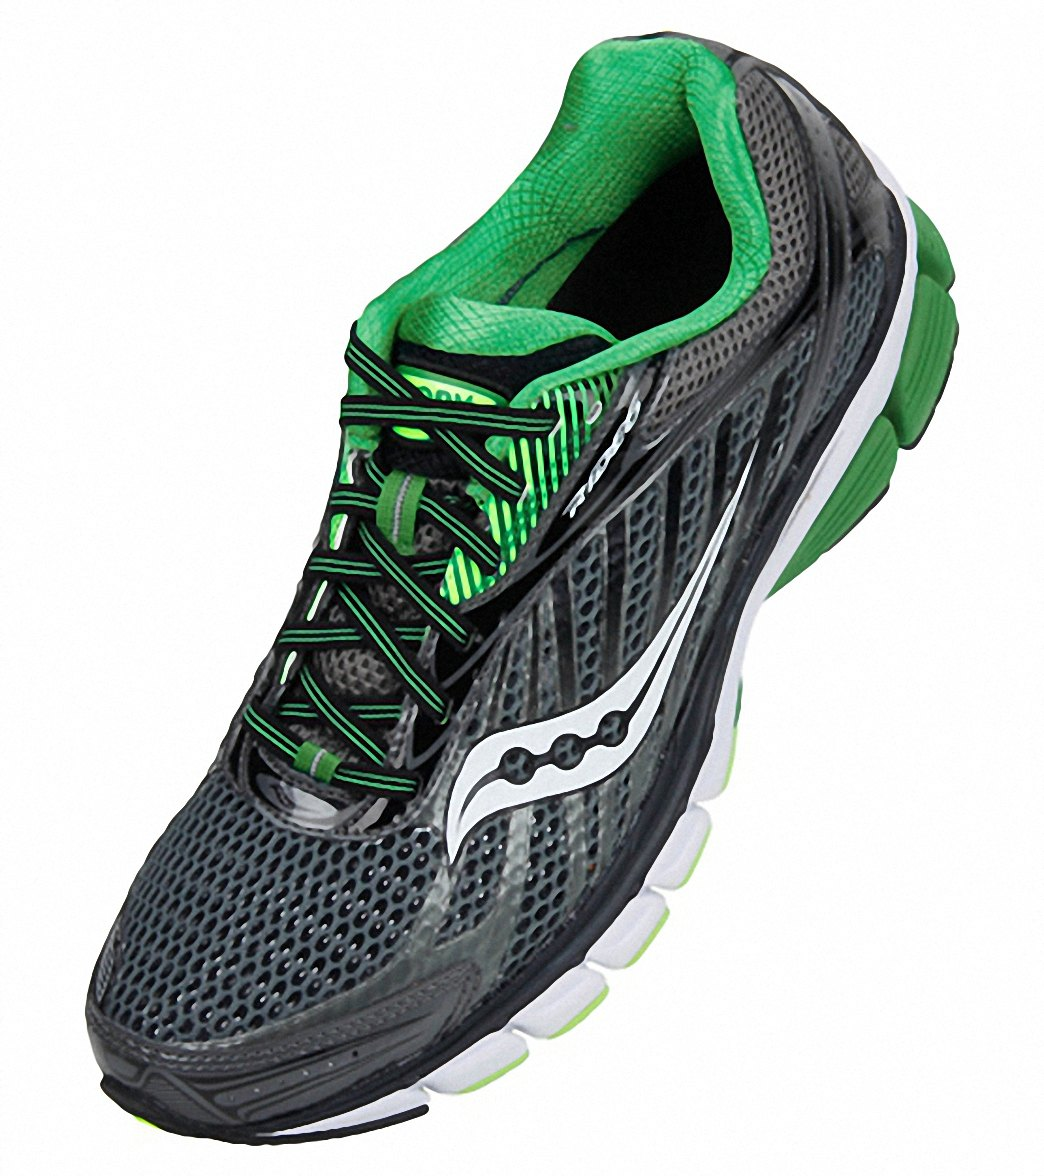 81bb9fdac1f7 Saucony Men s Ride 6 Running Shoes at SwimOutlet.com - Free Shipping